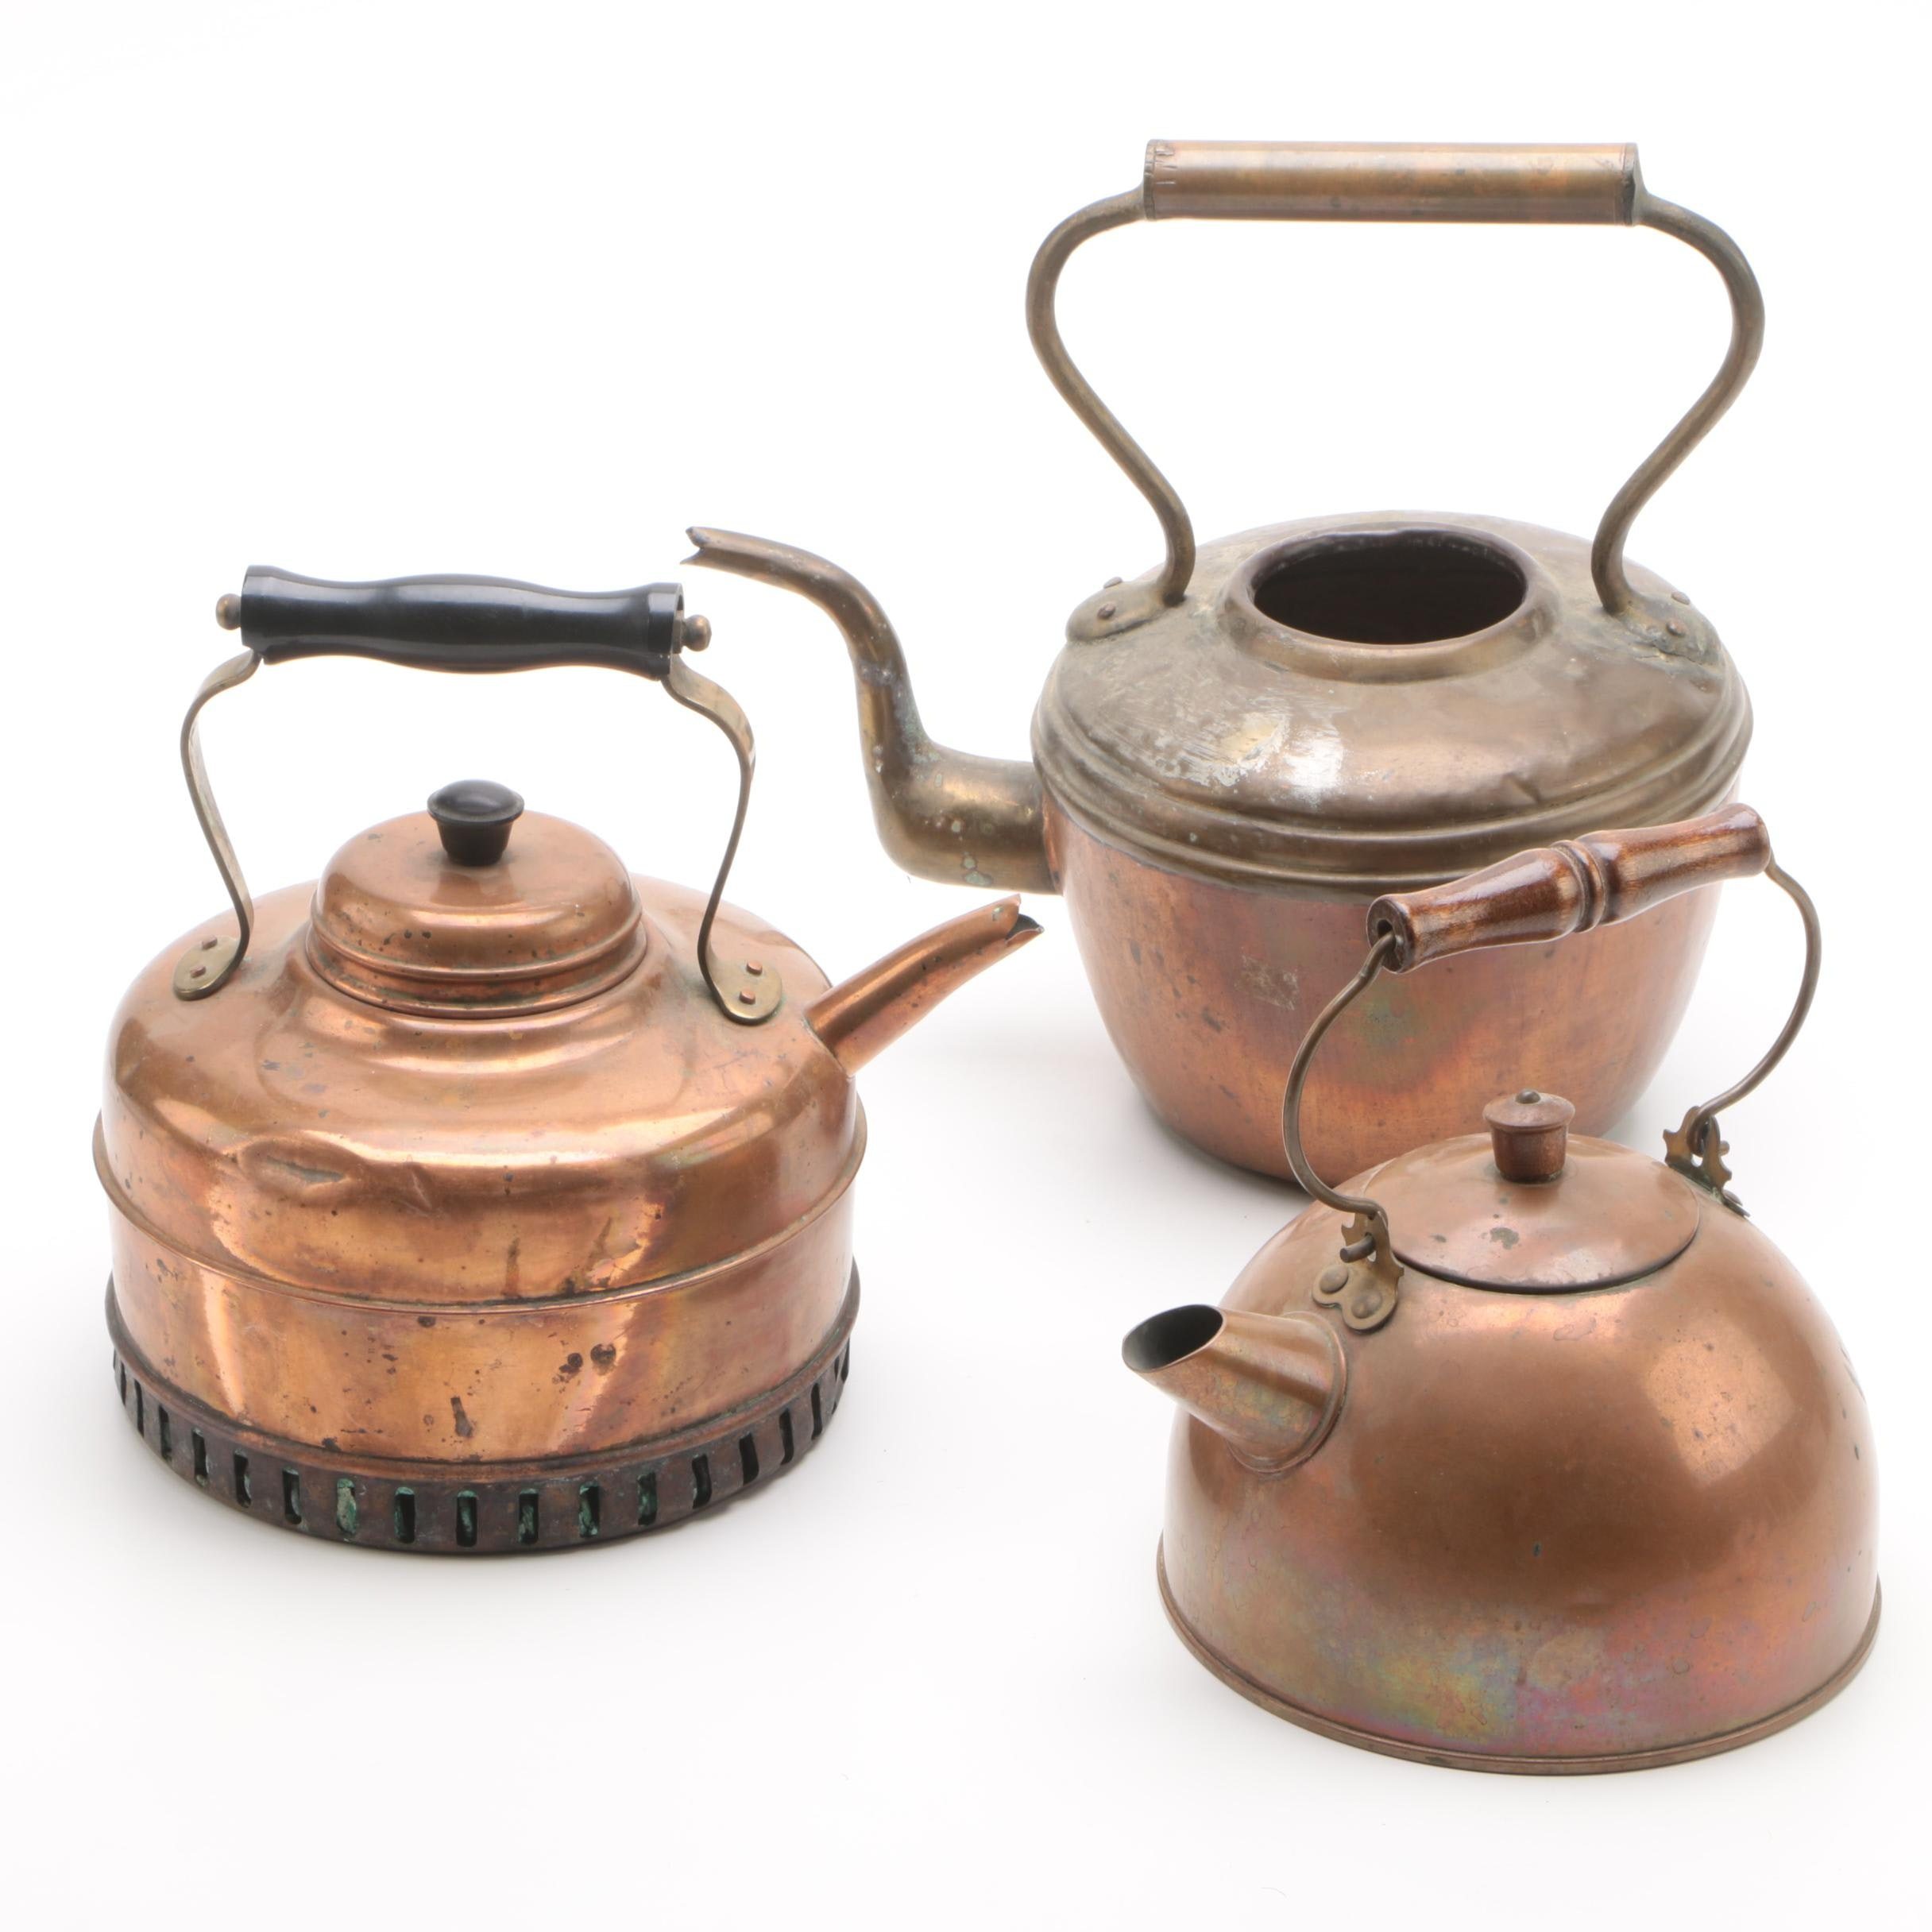 Vintage Copper and Brass Tea Kettles featuring Revere Ware